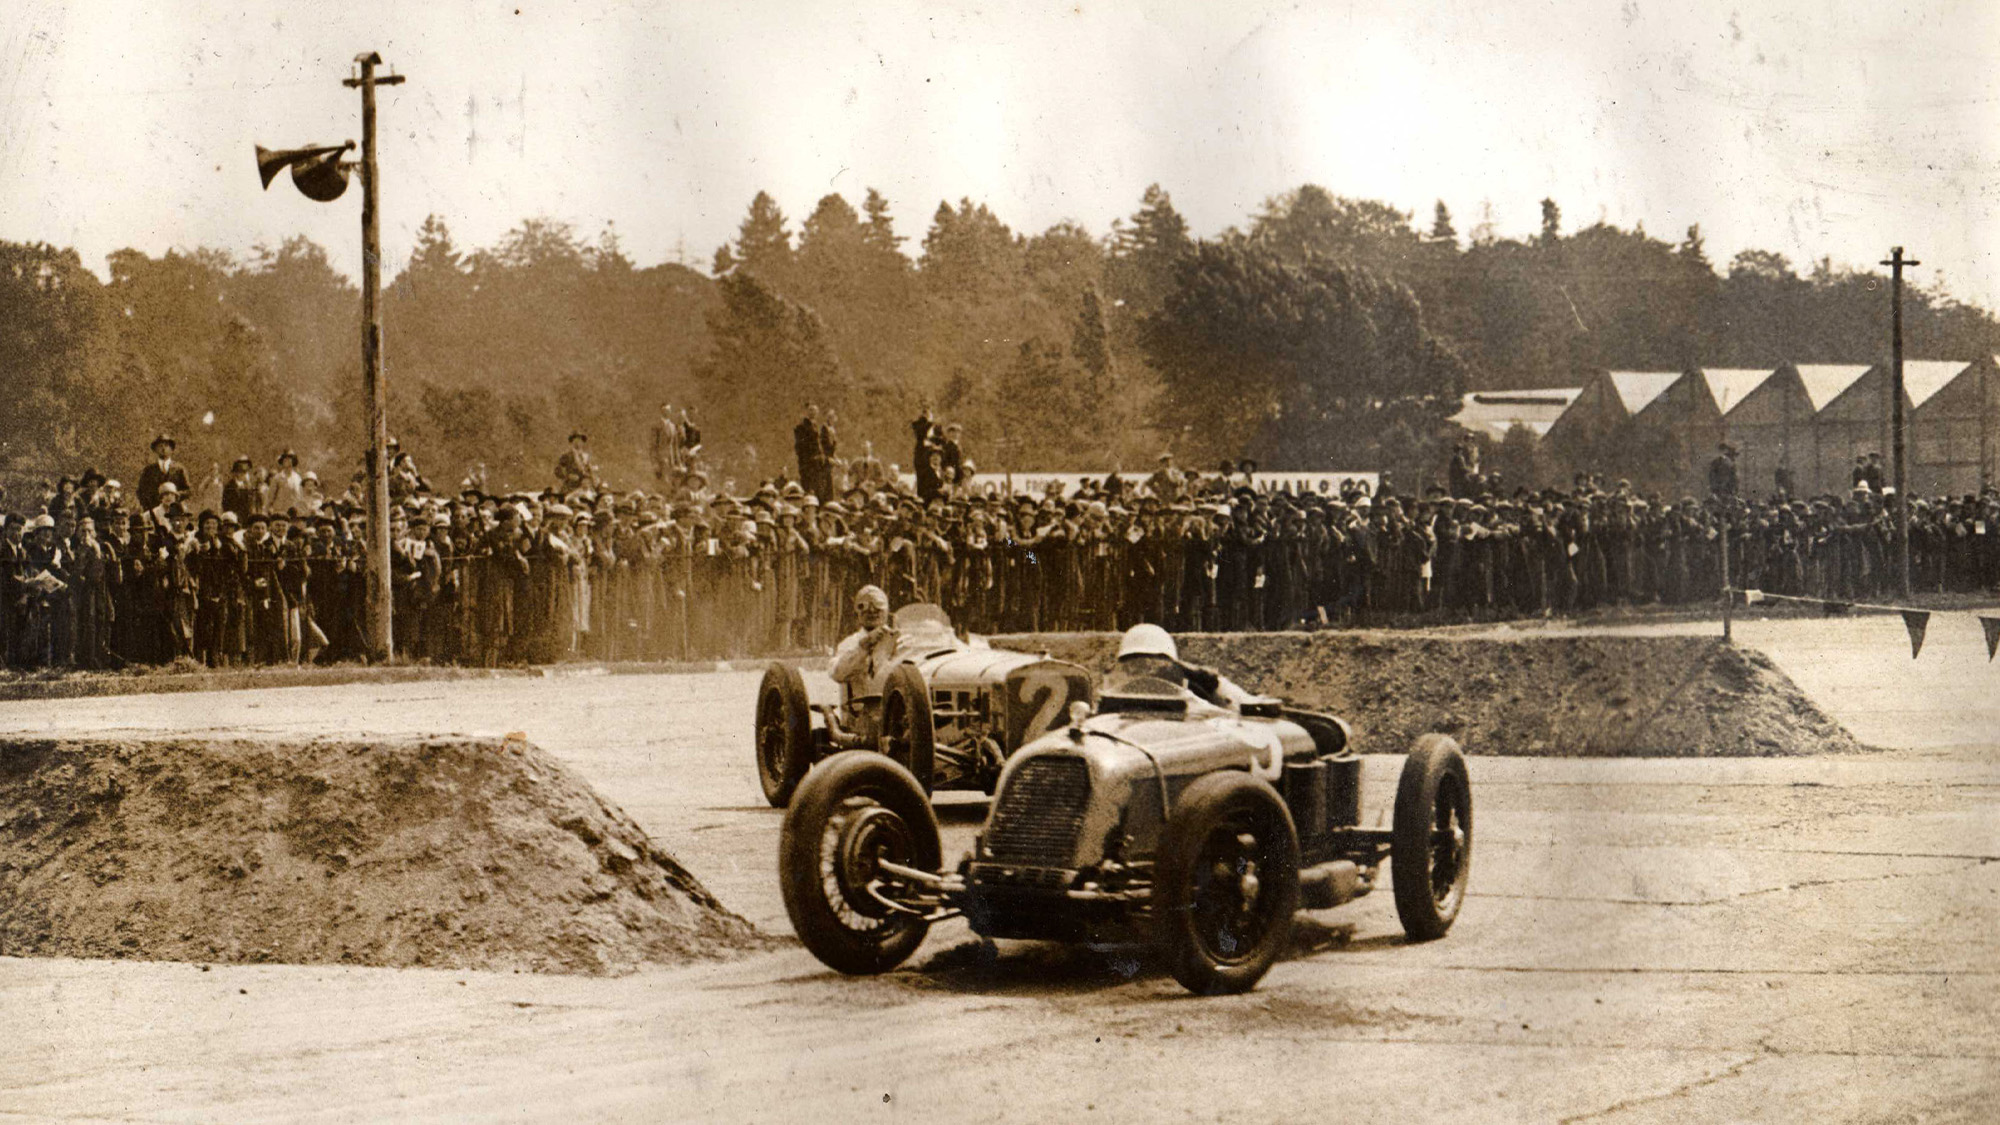 Henry Segrave and Robert Benoist during the first British Grand Prix at Brooklands in 1926